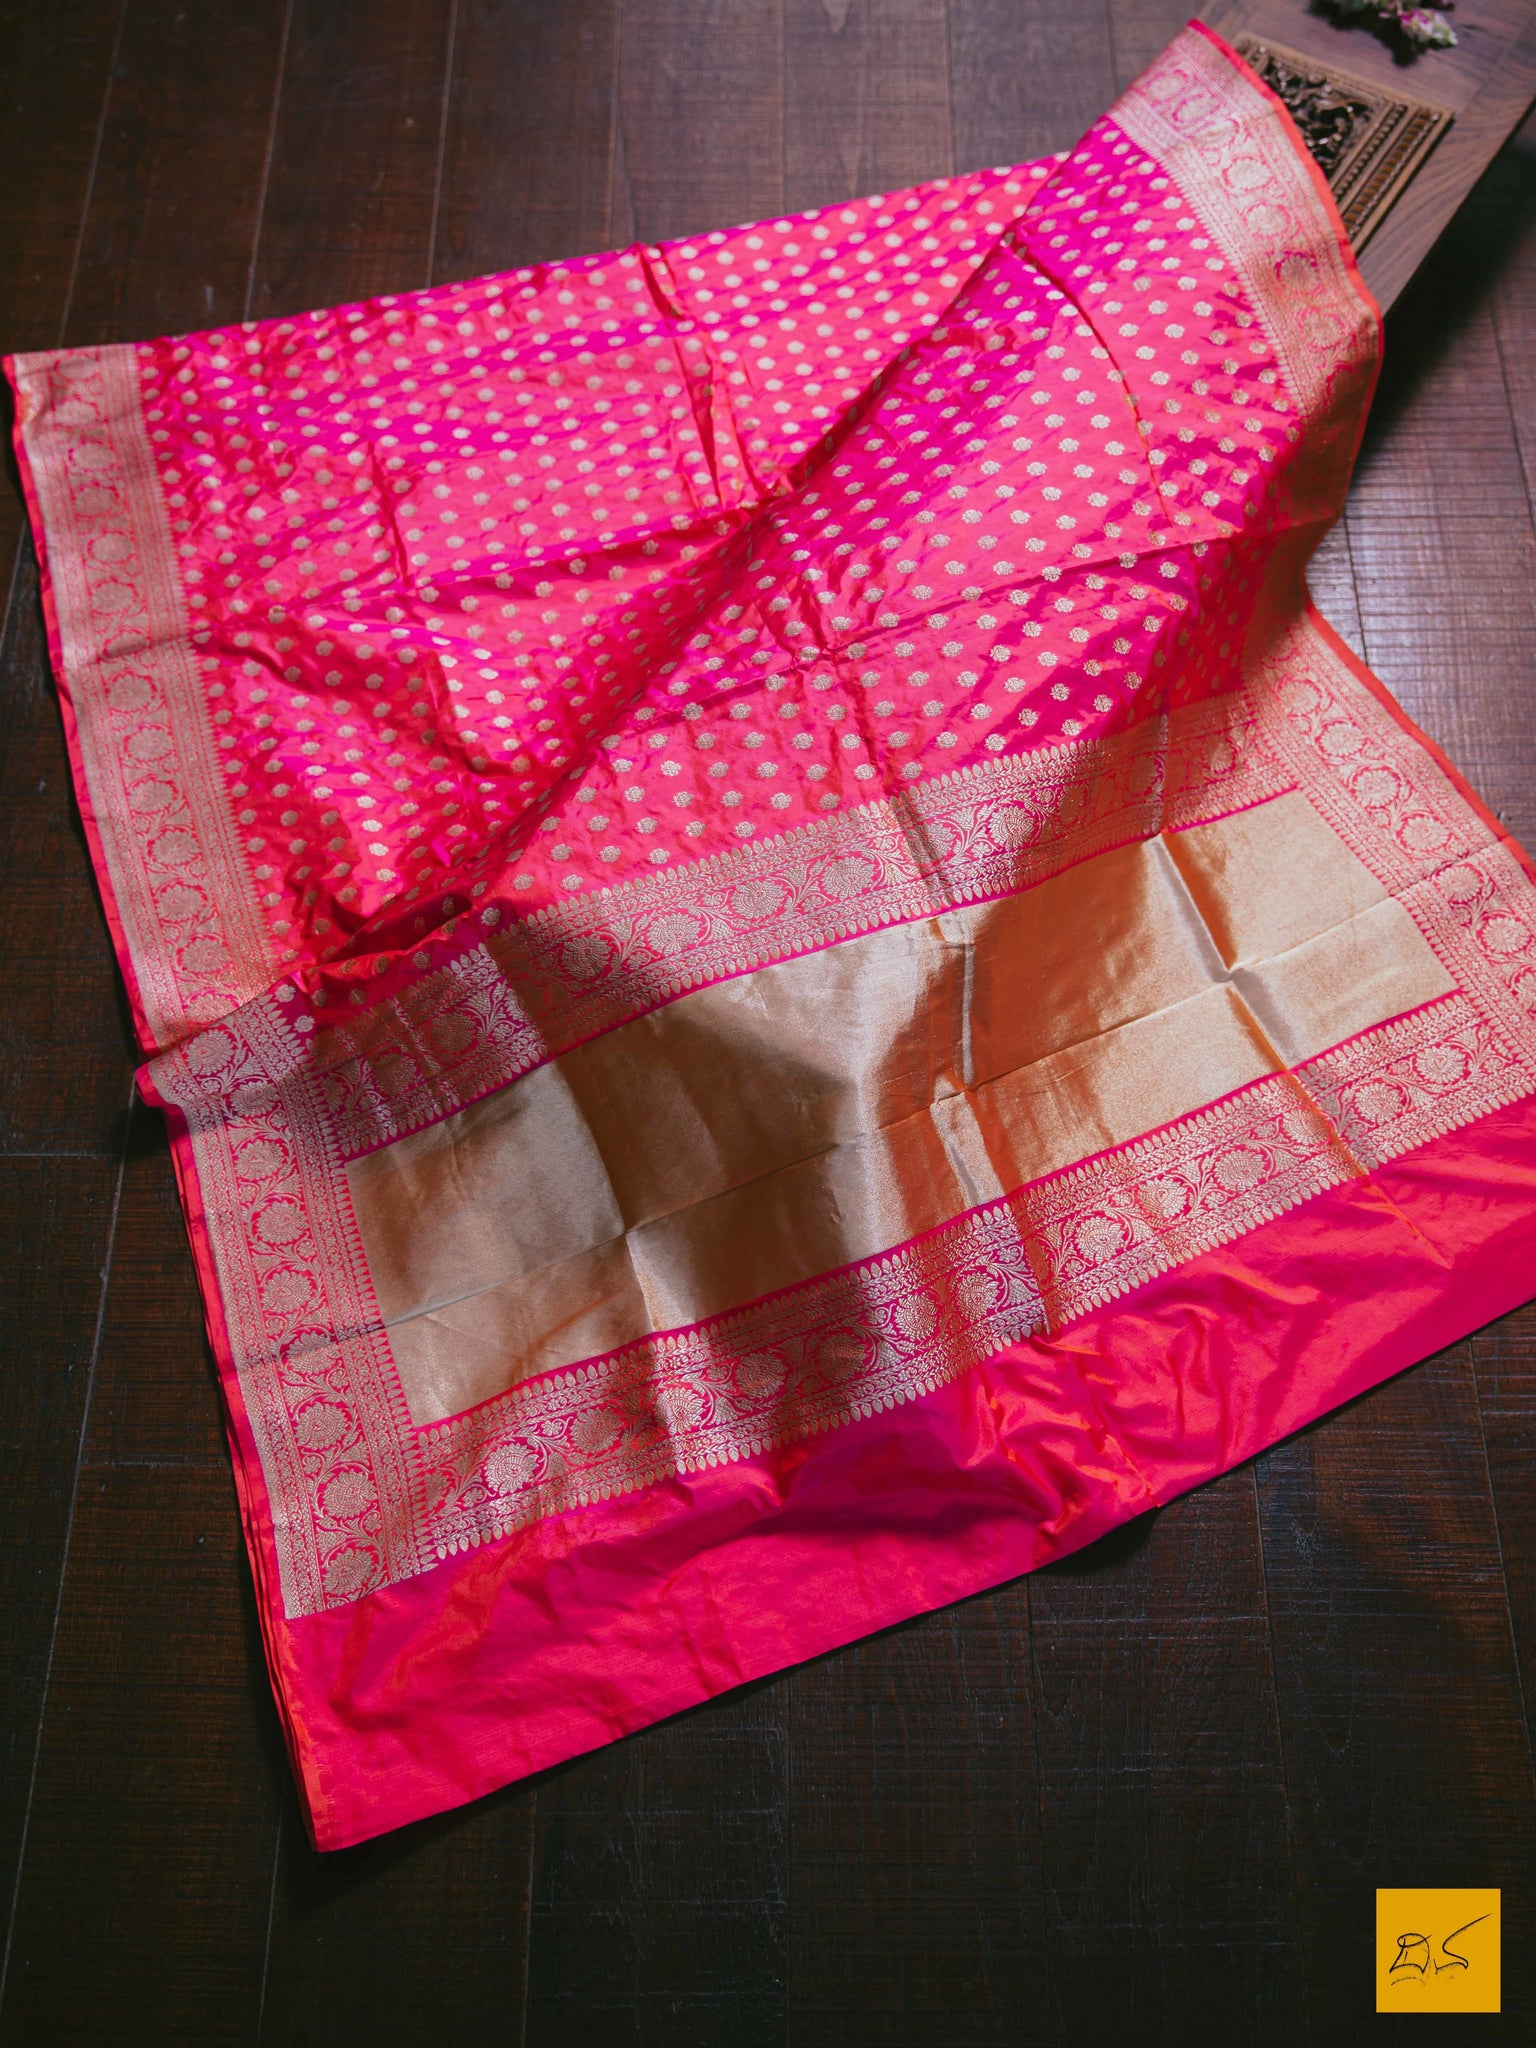 This is a beautiful banarasi katan silk saree with a Rose-Orange body. The saree which can be passed to the next generation. New trend of Banarasi designs, Banarasi for artists, art lovers, architects, saree lovers, saree connoisseurs, musicians, dancers, doctors, Banarasi Katan silk saree, indian saree images, latest saree with price, only saree images, new Banarasi saree design.